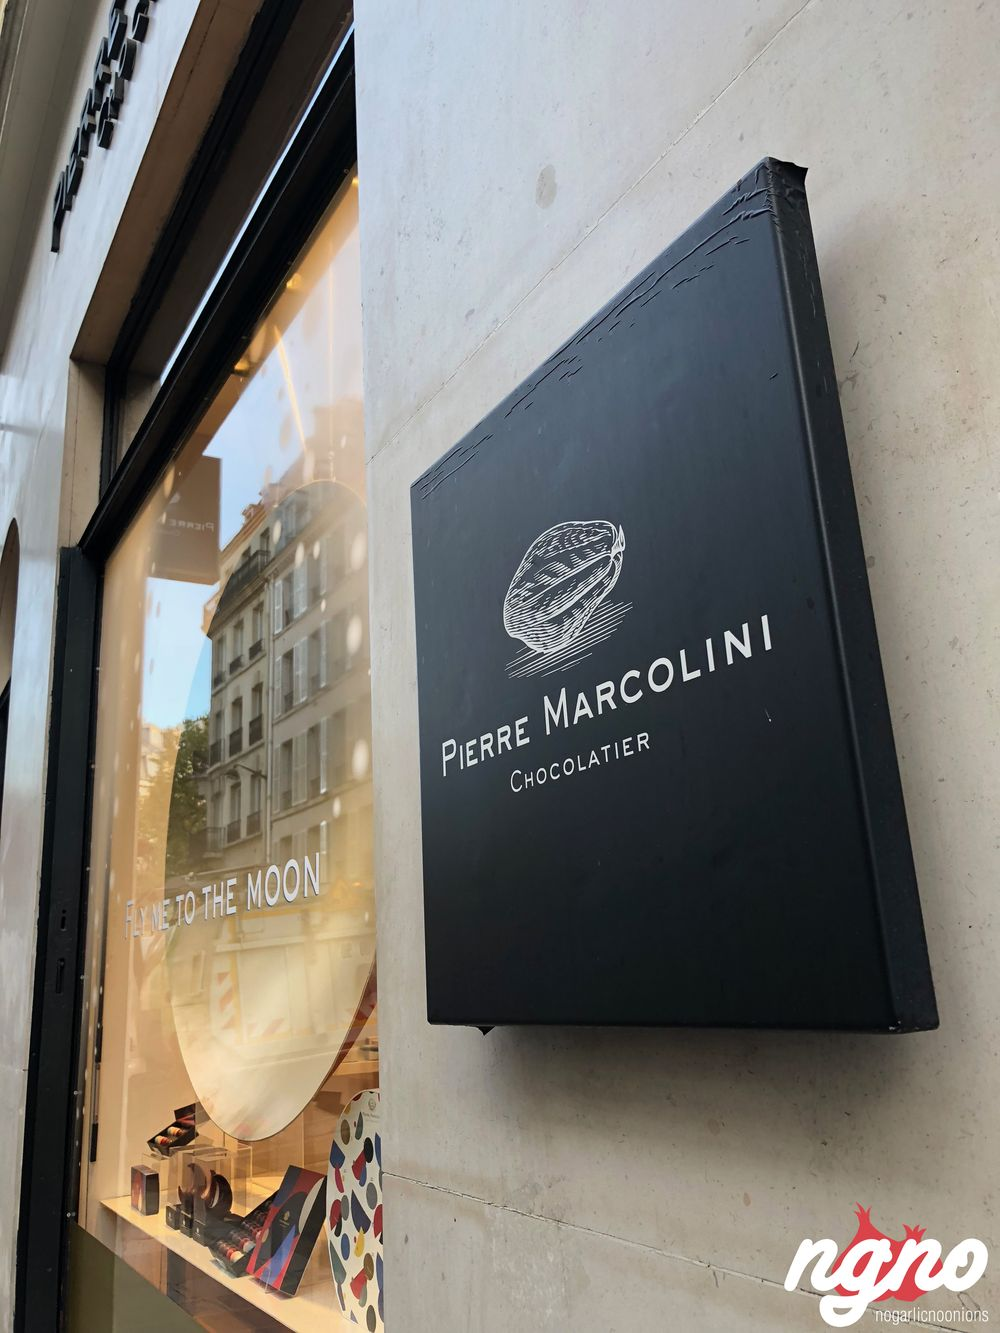 pierre-marcolini-paris232018-01-14-04-47-53